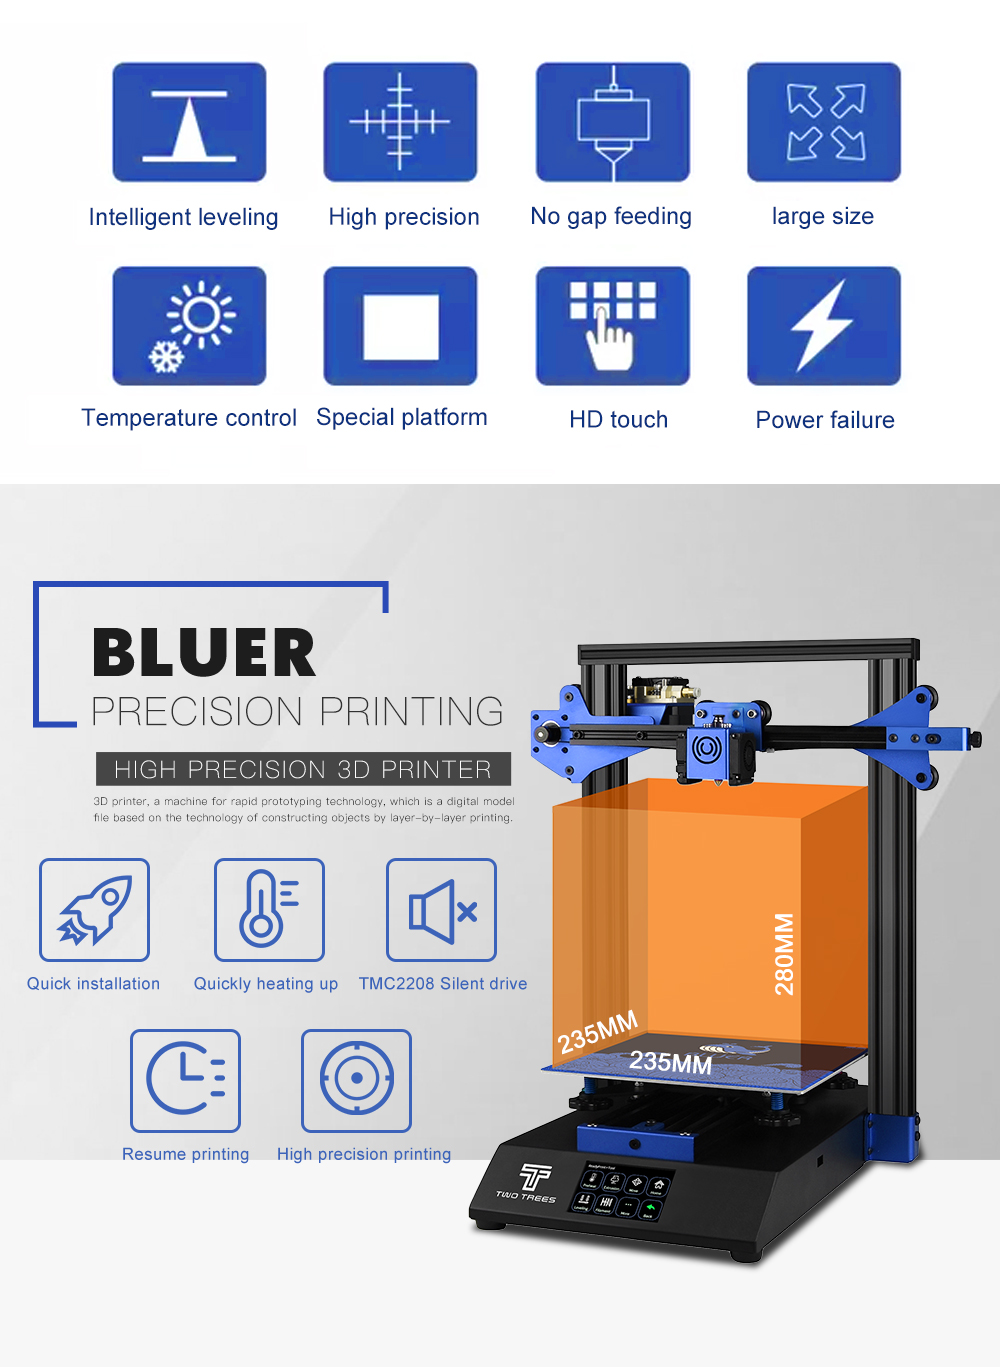 BLUER TWO TREES 3D Printer for High Precision Printing with Auto Leveling and Resume Power Failure 6